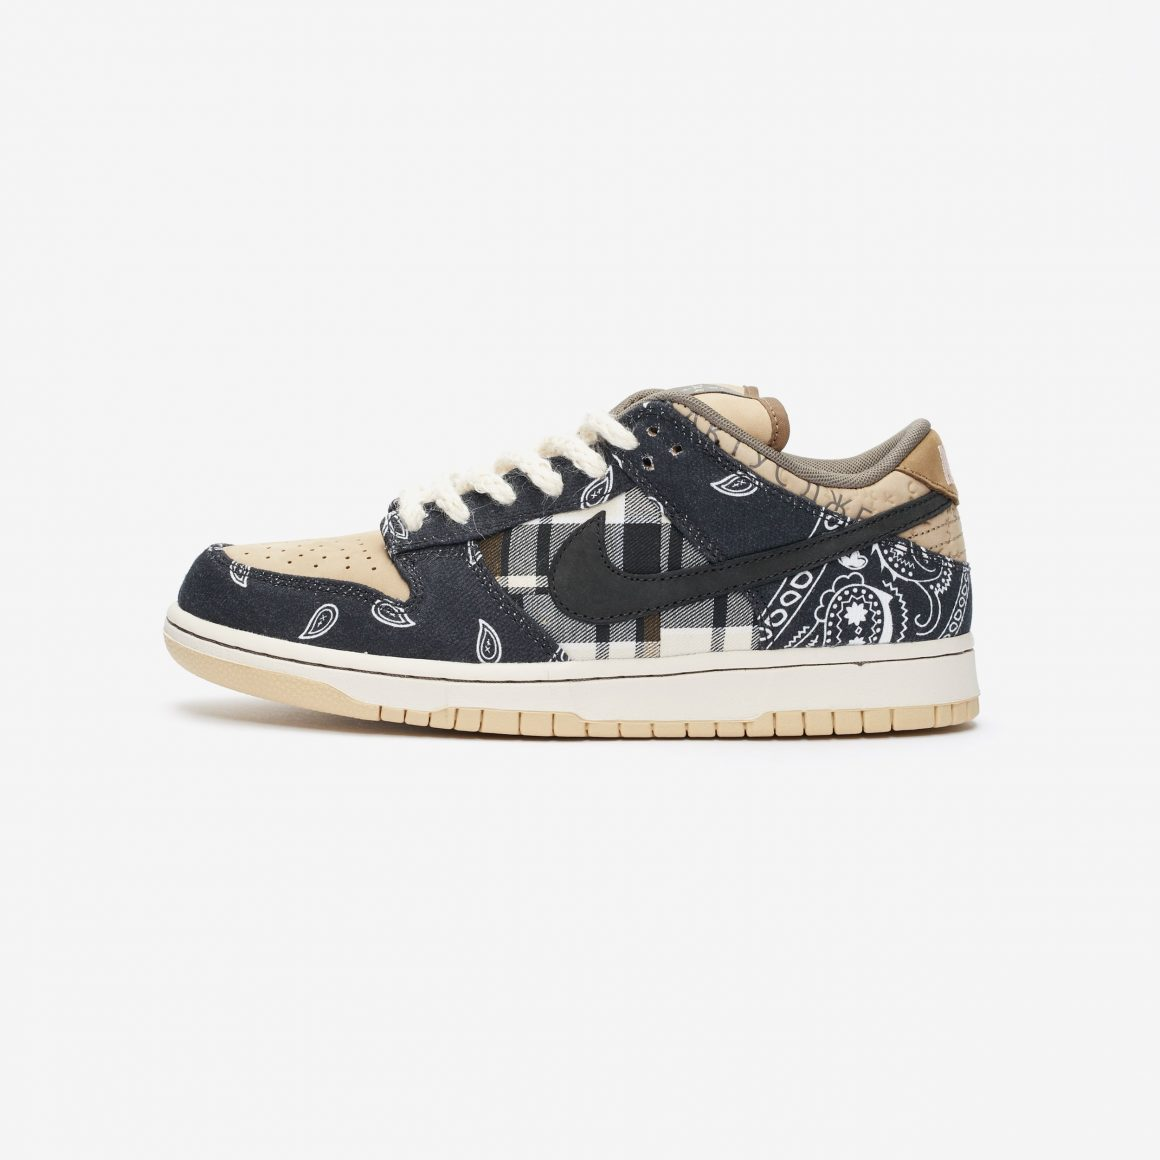 ravis Scott x Nike SB Dunk Low